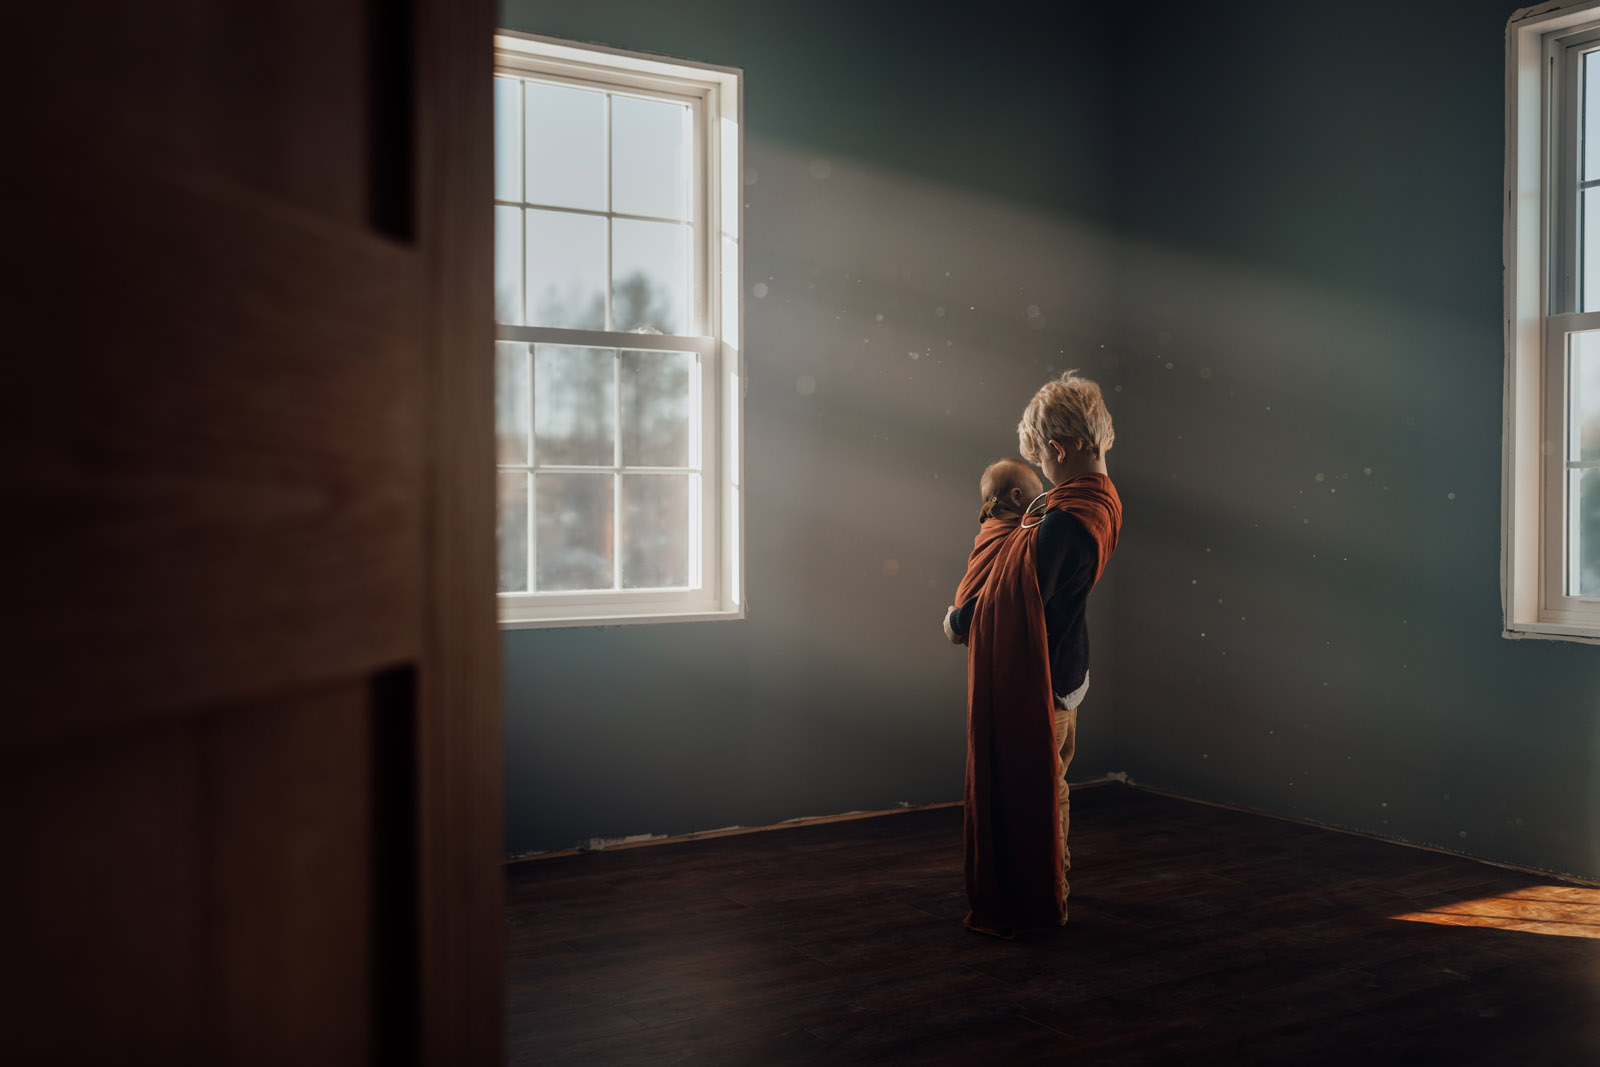 boy holding baby by window with light beams meg loeks